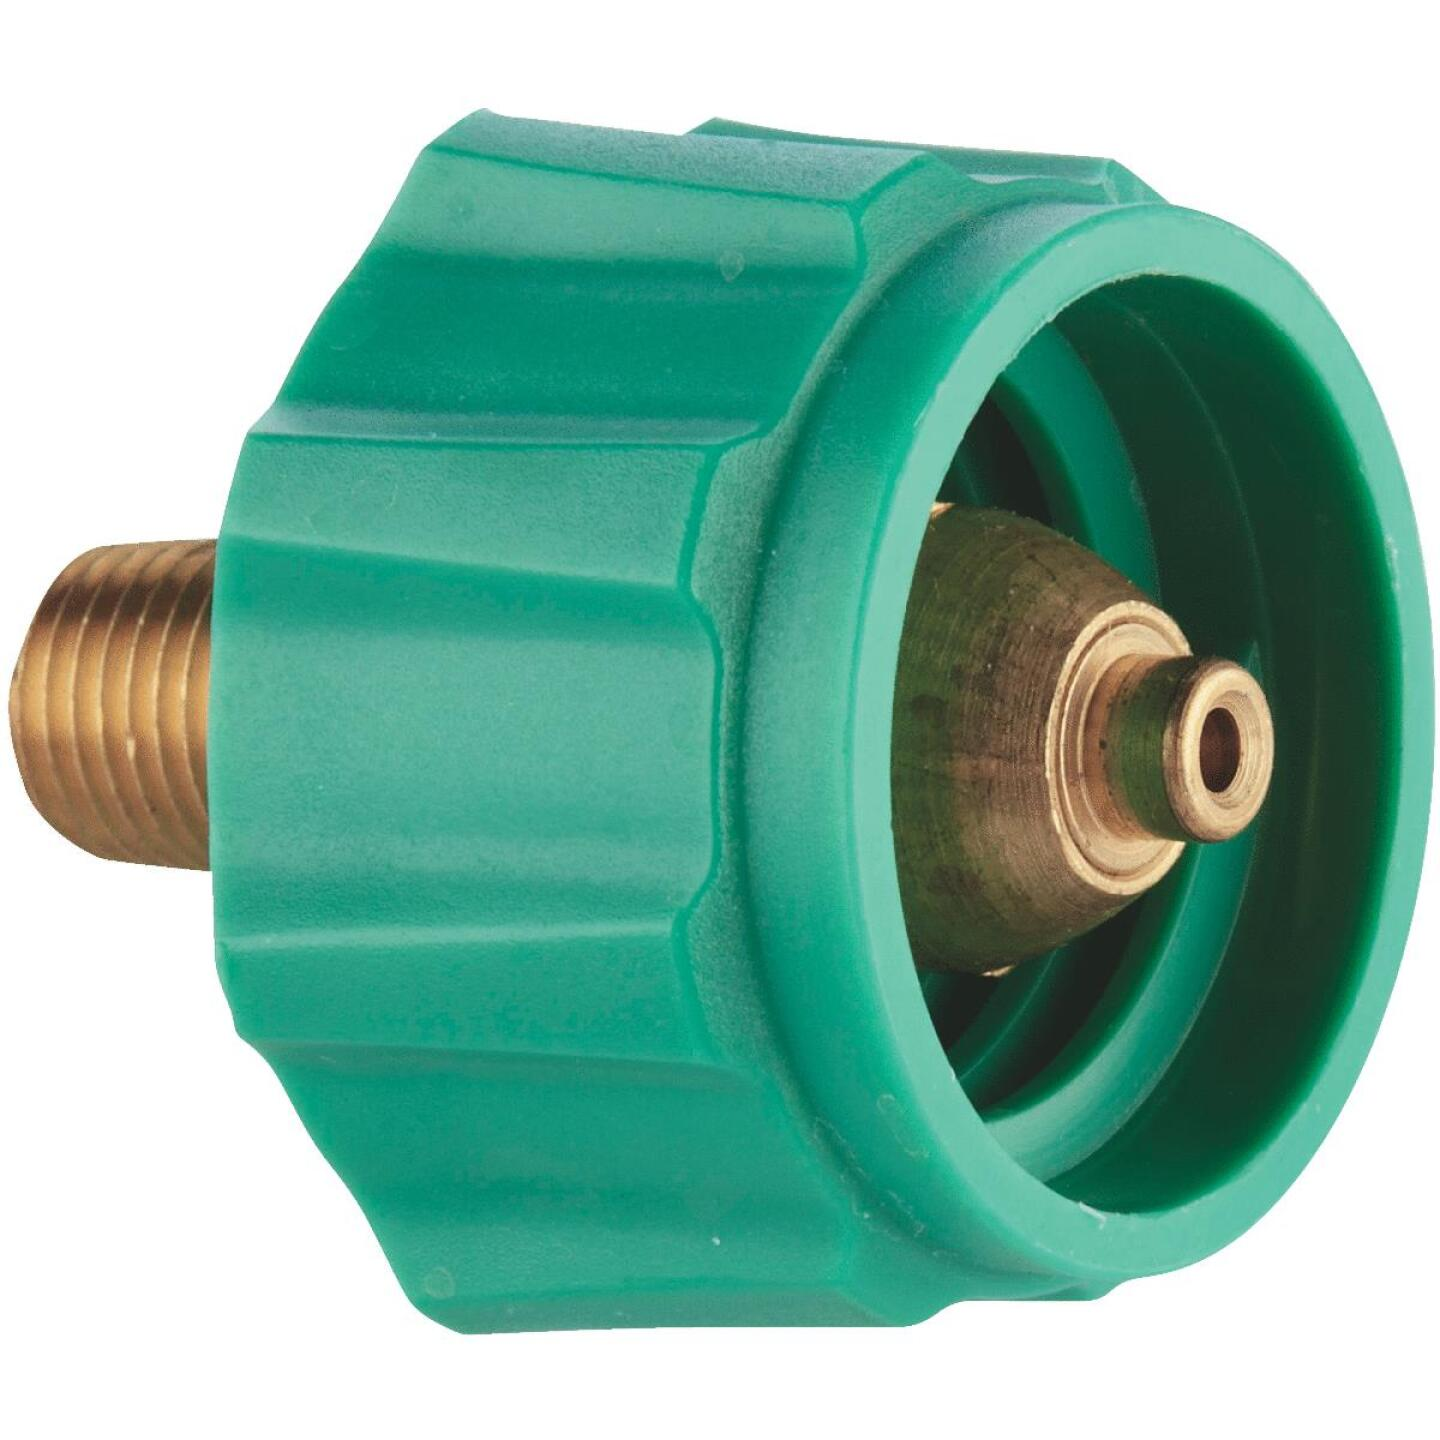 MR. HEATER Acme Nut x 1/4 In. MPT Under 200,000 BTU Quick Connect Male Plug Image 1